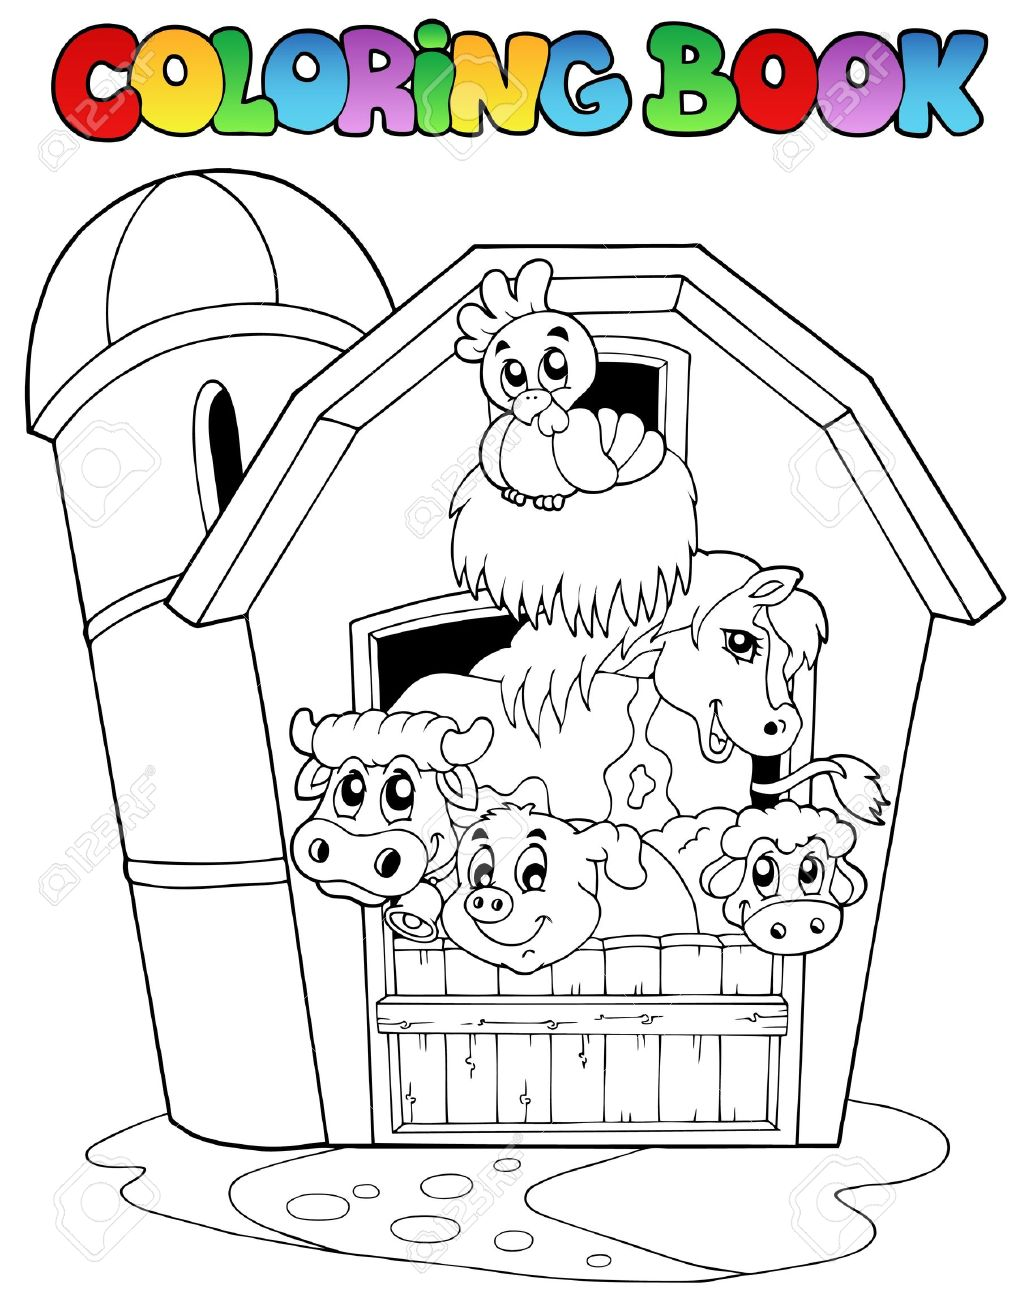 Coloring book with barn and animals - vector illustration. Stock Vector - 9674306